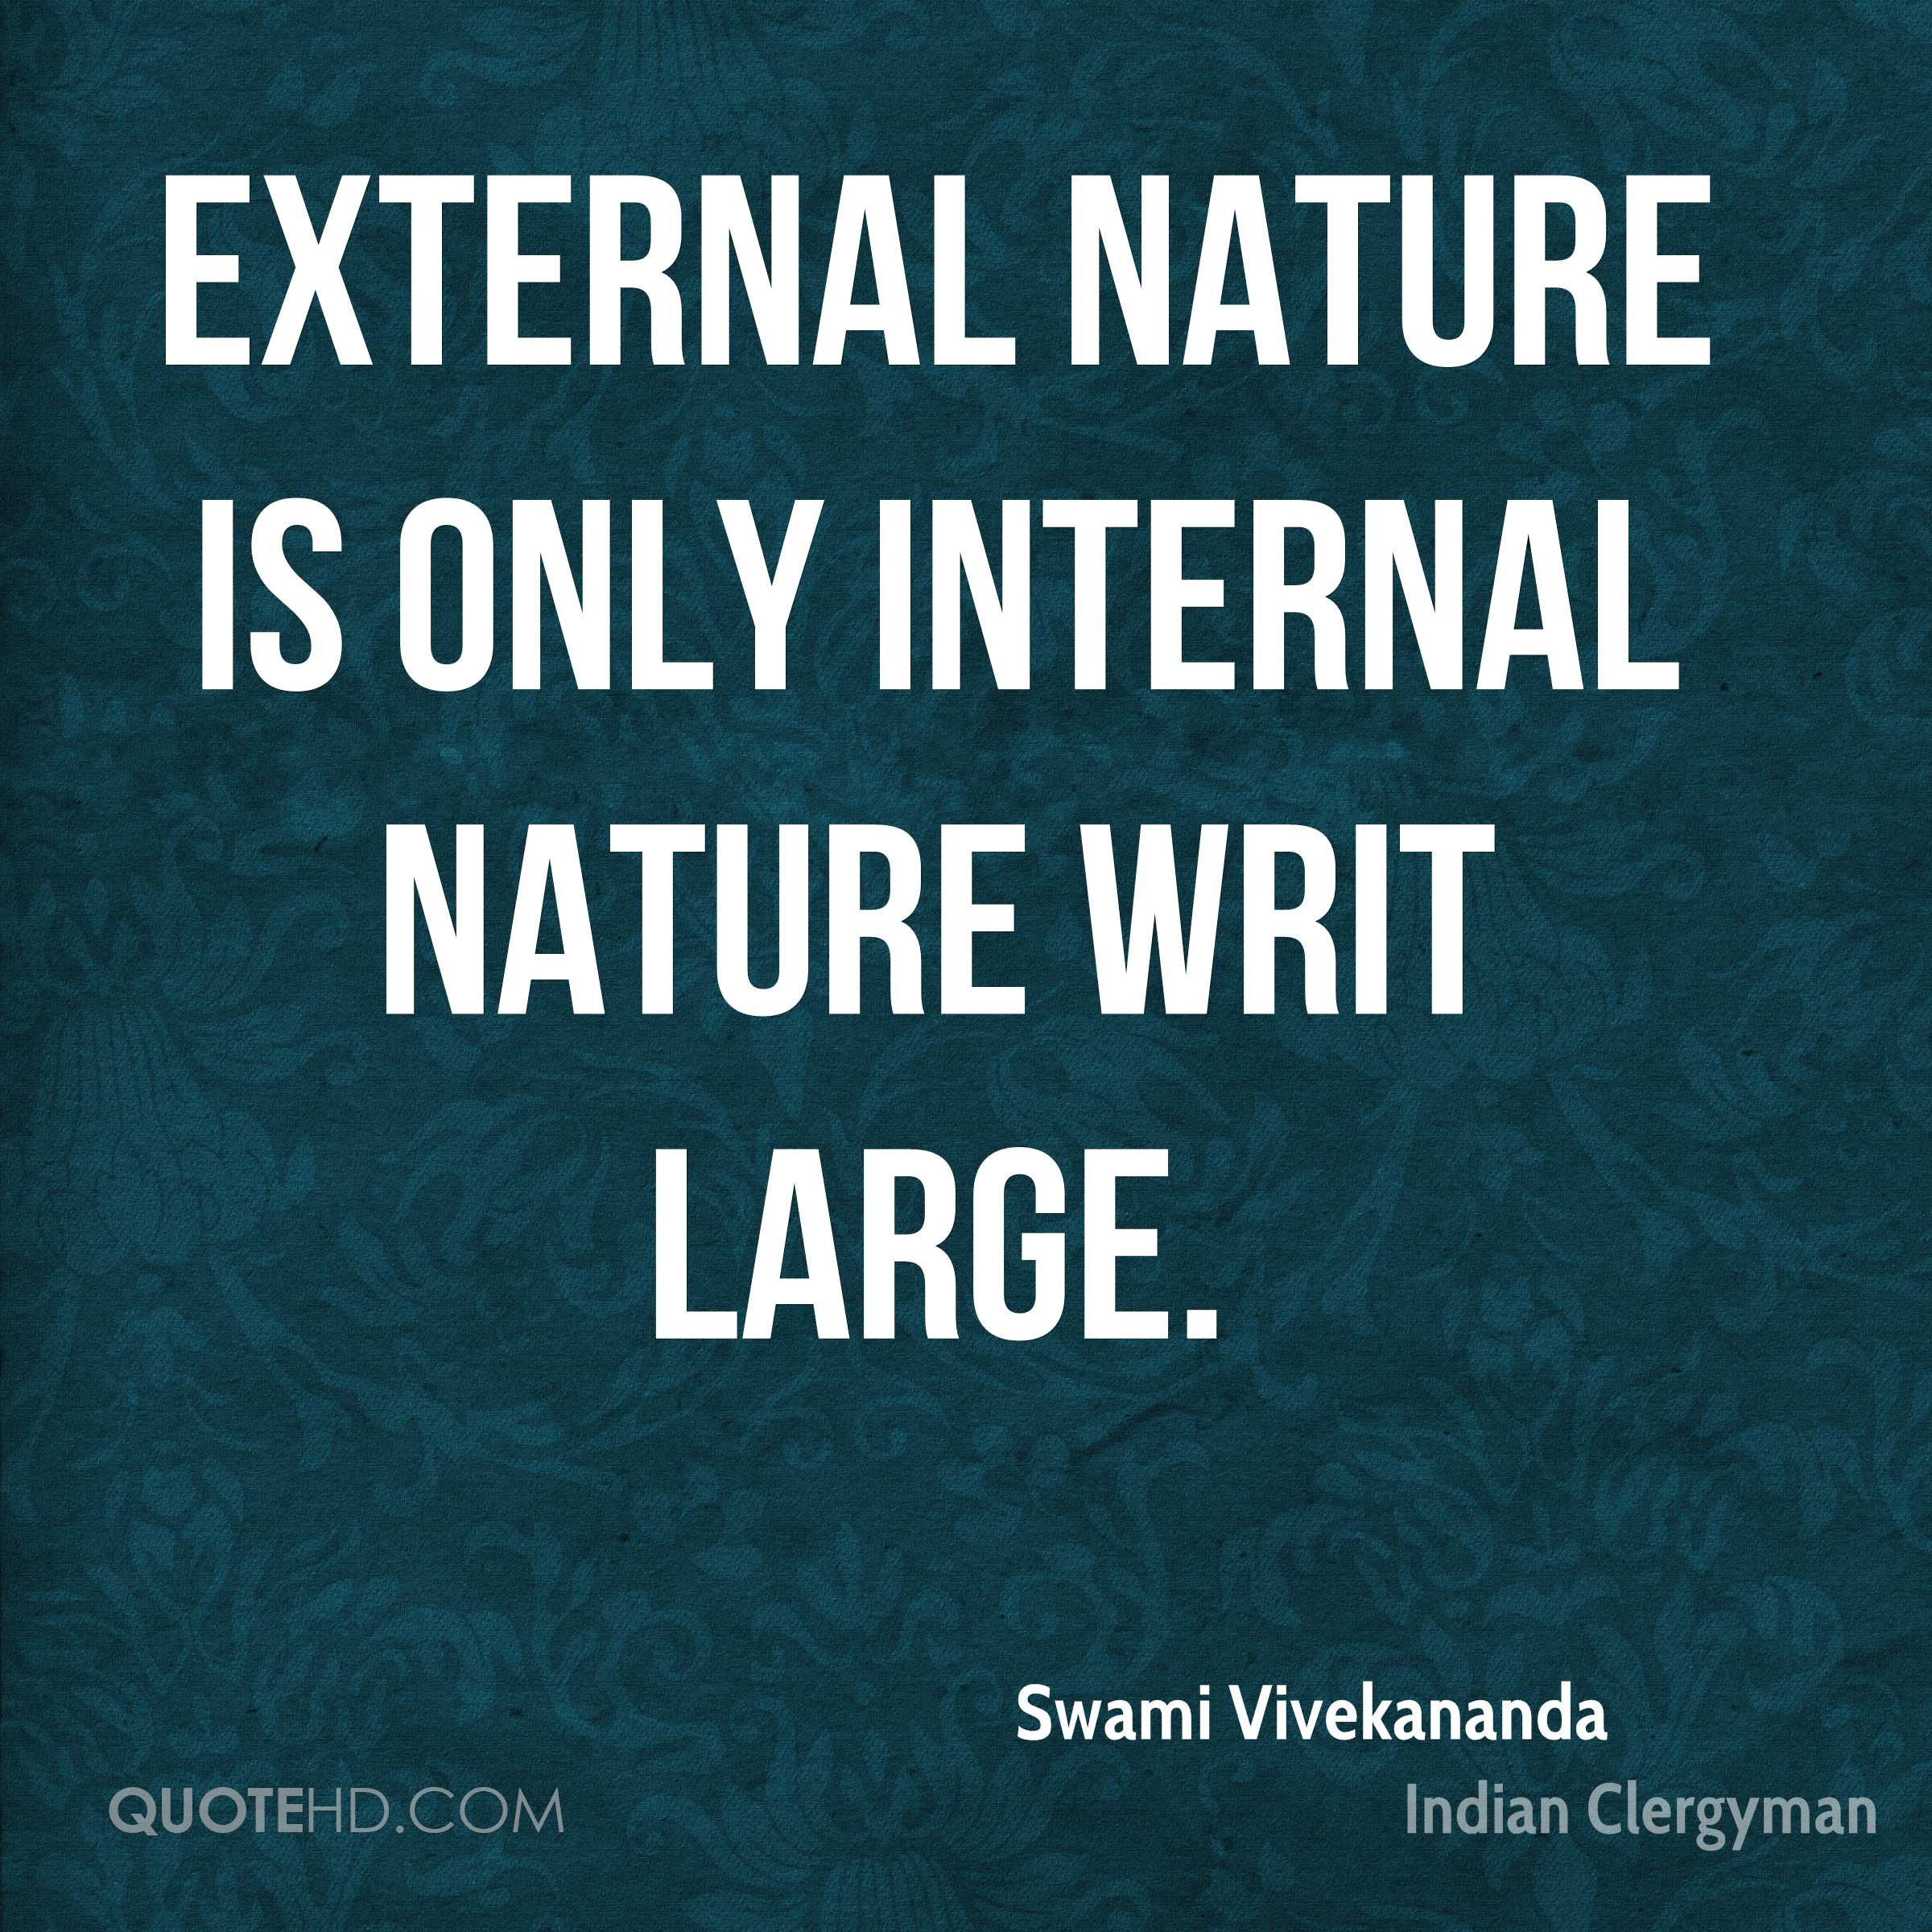 External nature is only internal nature writ large.